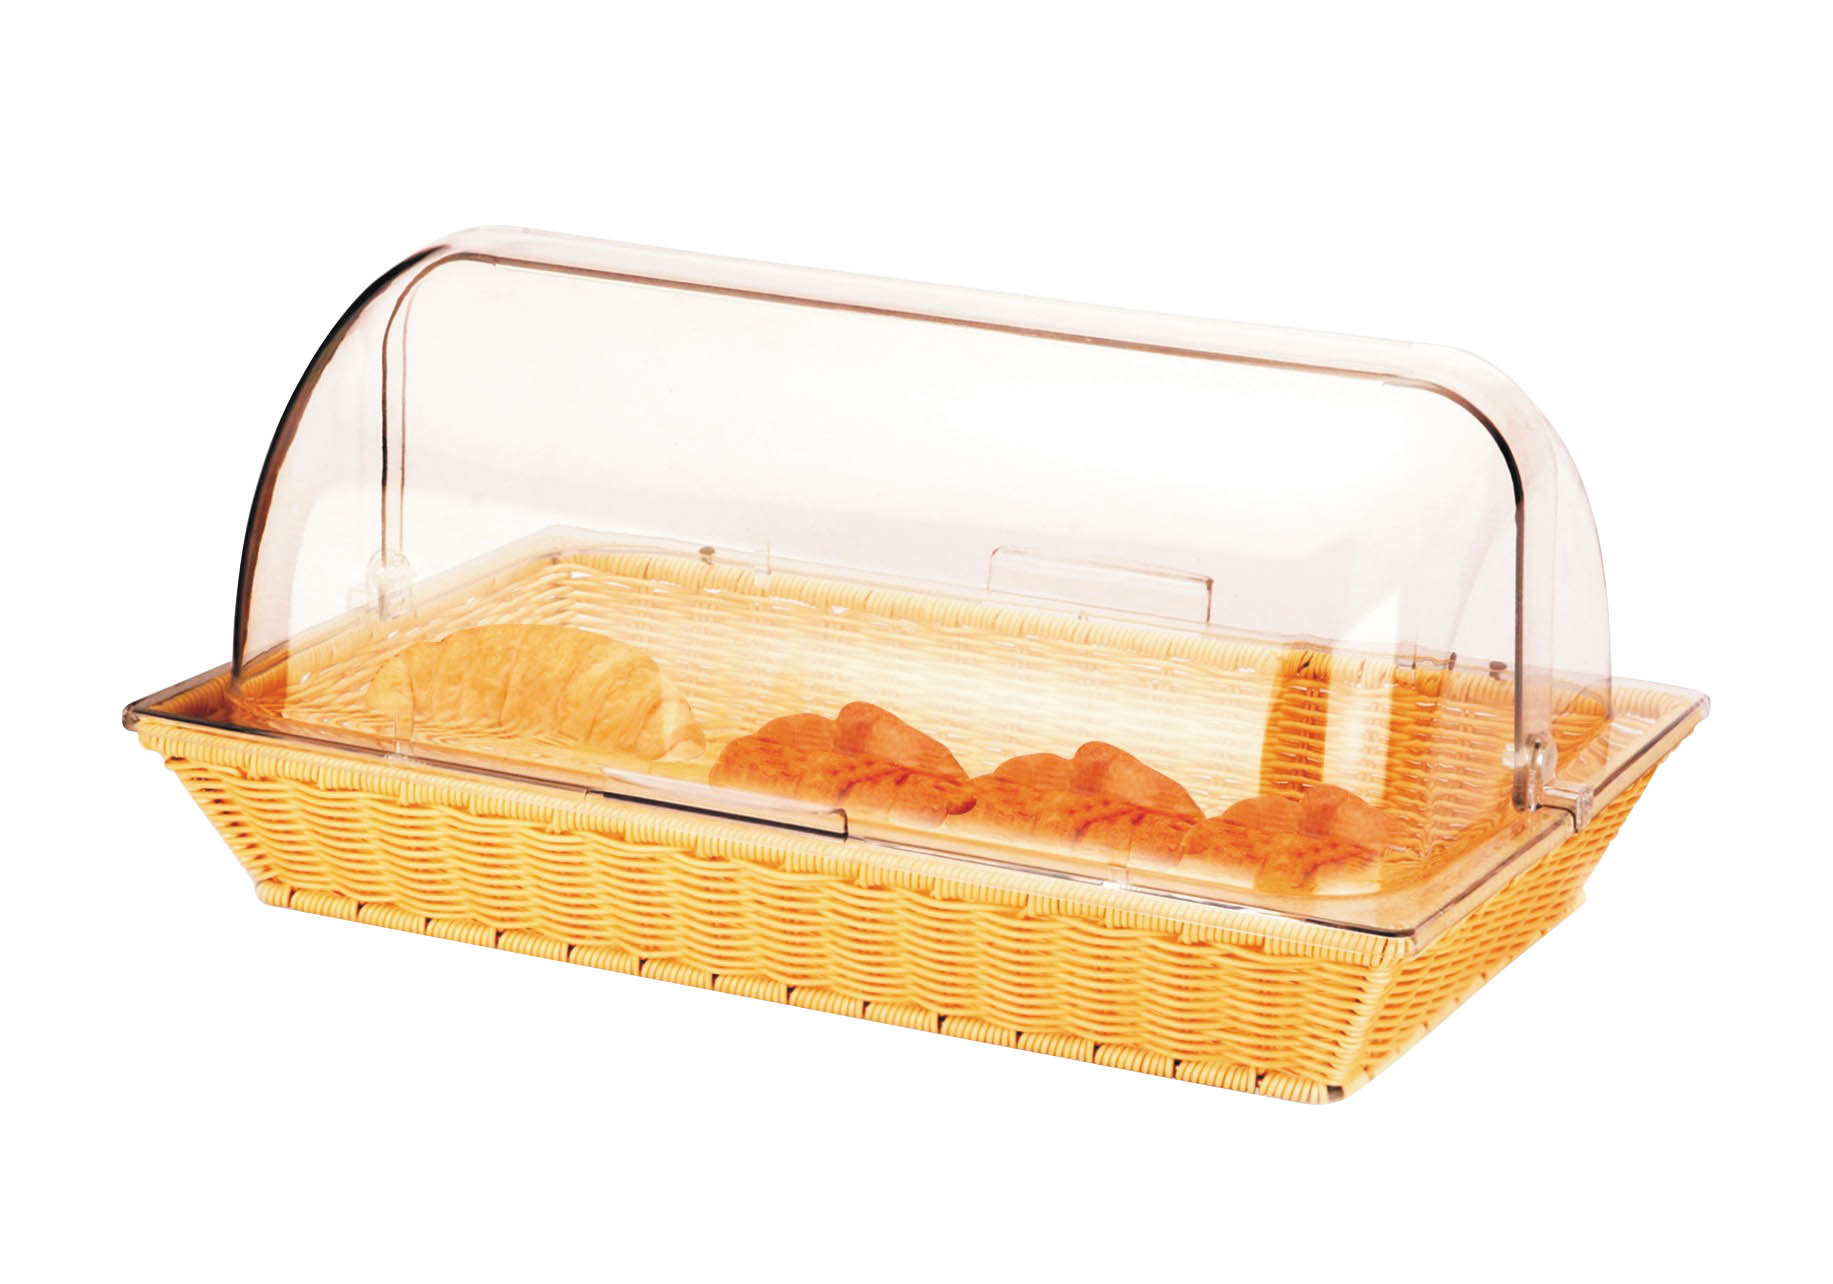 Pumpkin Pie additionally Picos De Pan Small Spanish Breadsticks 230g 9239 P also Sabritasoriginalpotatochips as well mercial Bread Display Basket With Roll Top Hygiene Cover Ideal For Breakfast Bars Etc 1607 P besides PremiumDryFruit 500Grams. on bread gift baskets